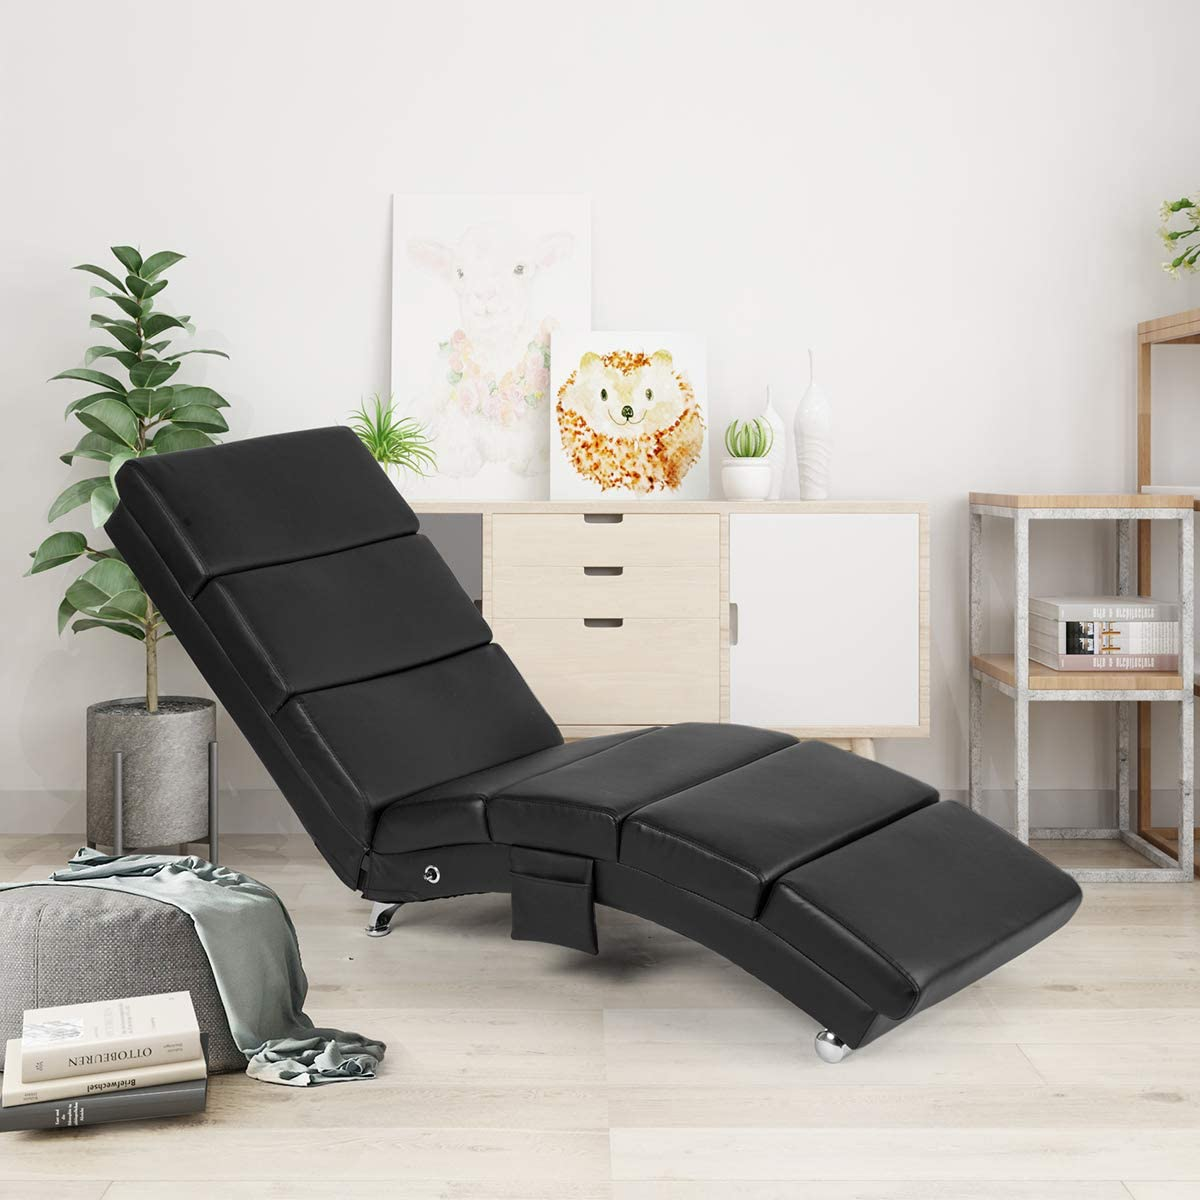 YOLENY Synthetic Leather Chaise Lounge with Massage Function,Massage Chair (Black)